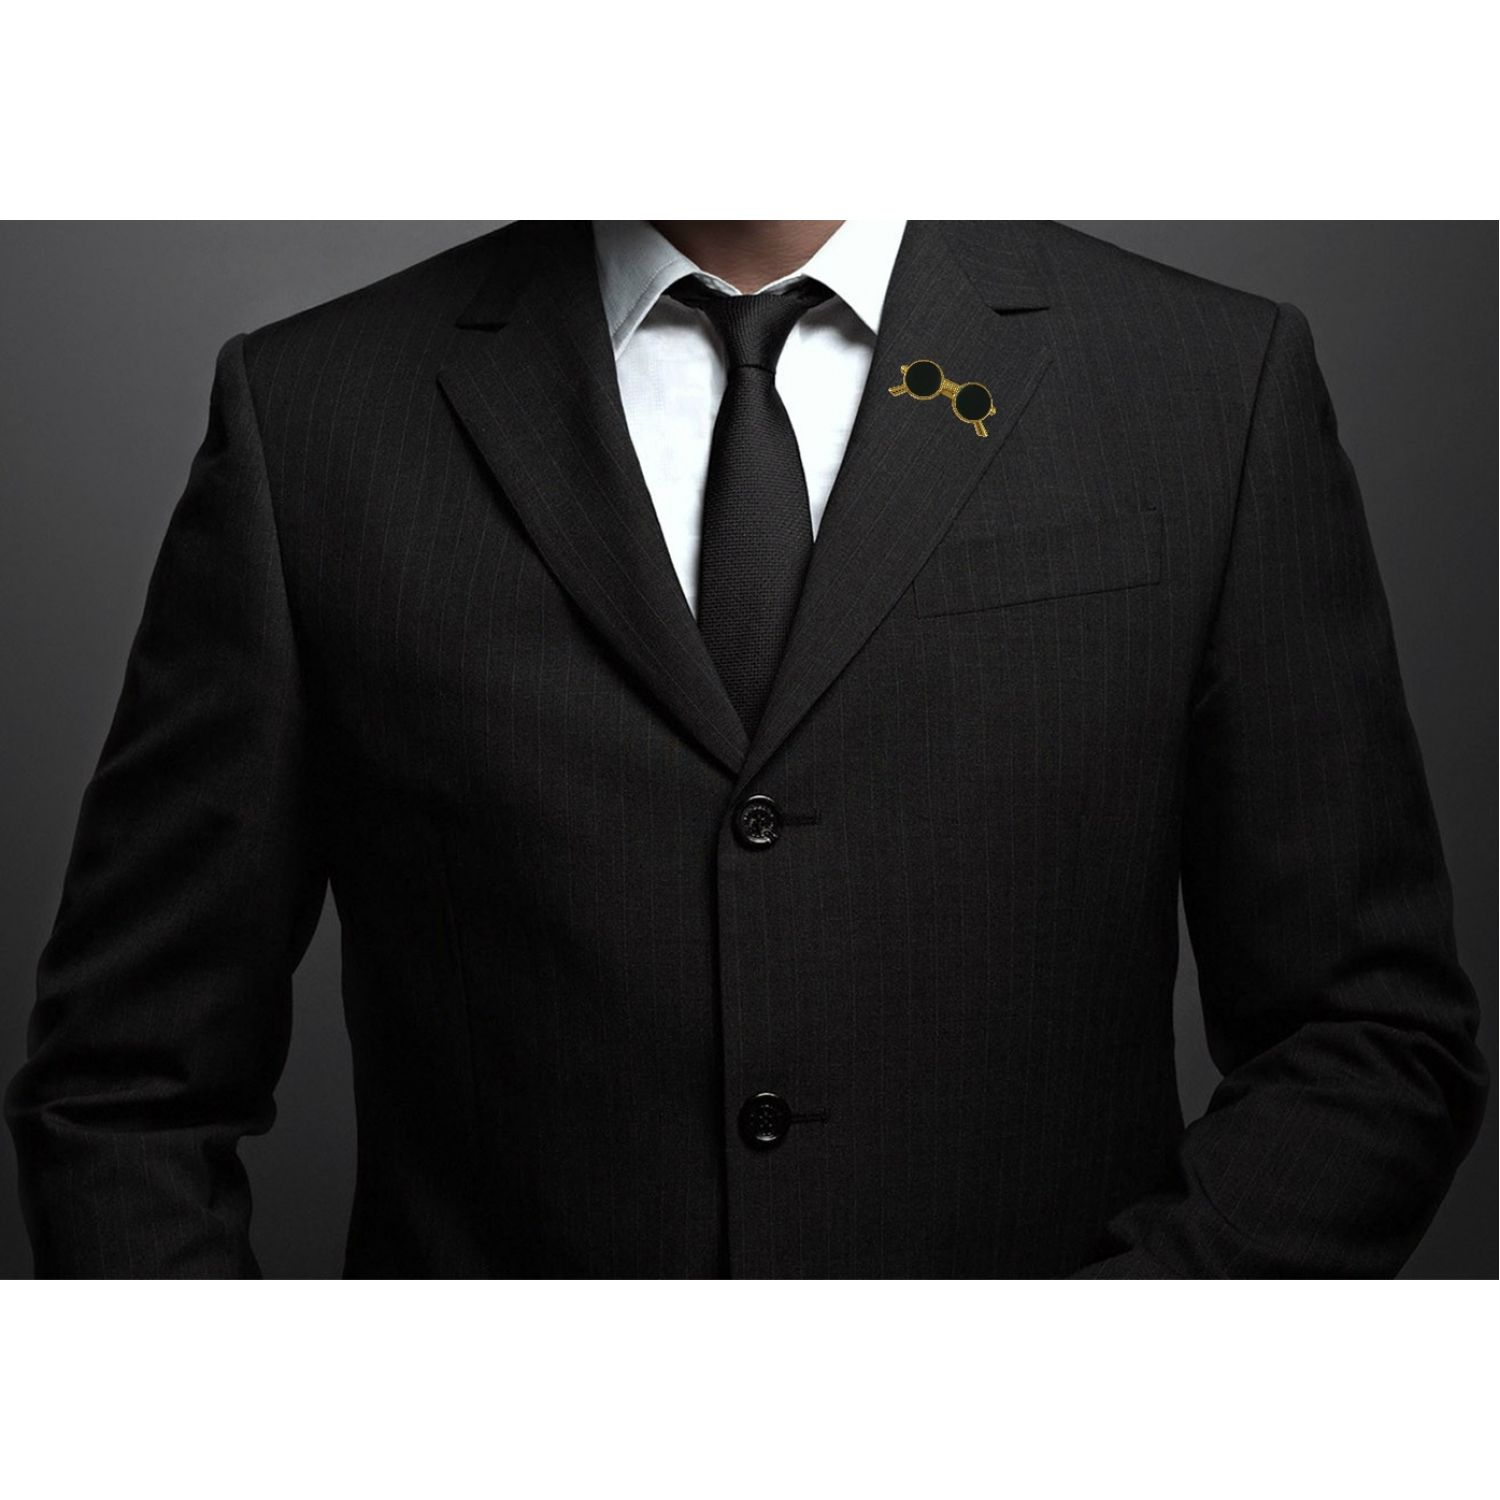 available suits blackl the mainstore man a at brooch mens s seasons tag seated blog second all hhc suit richard life